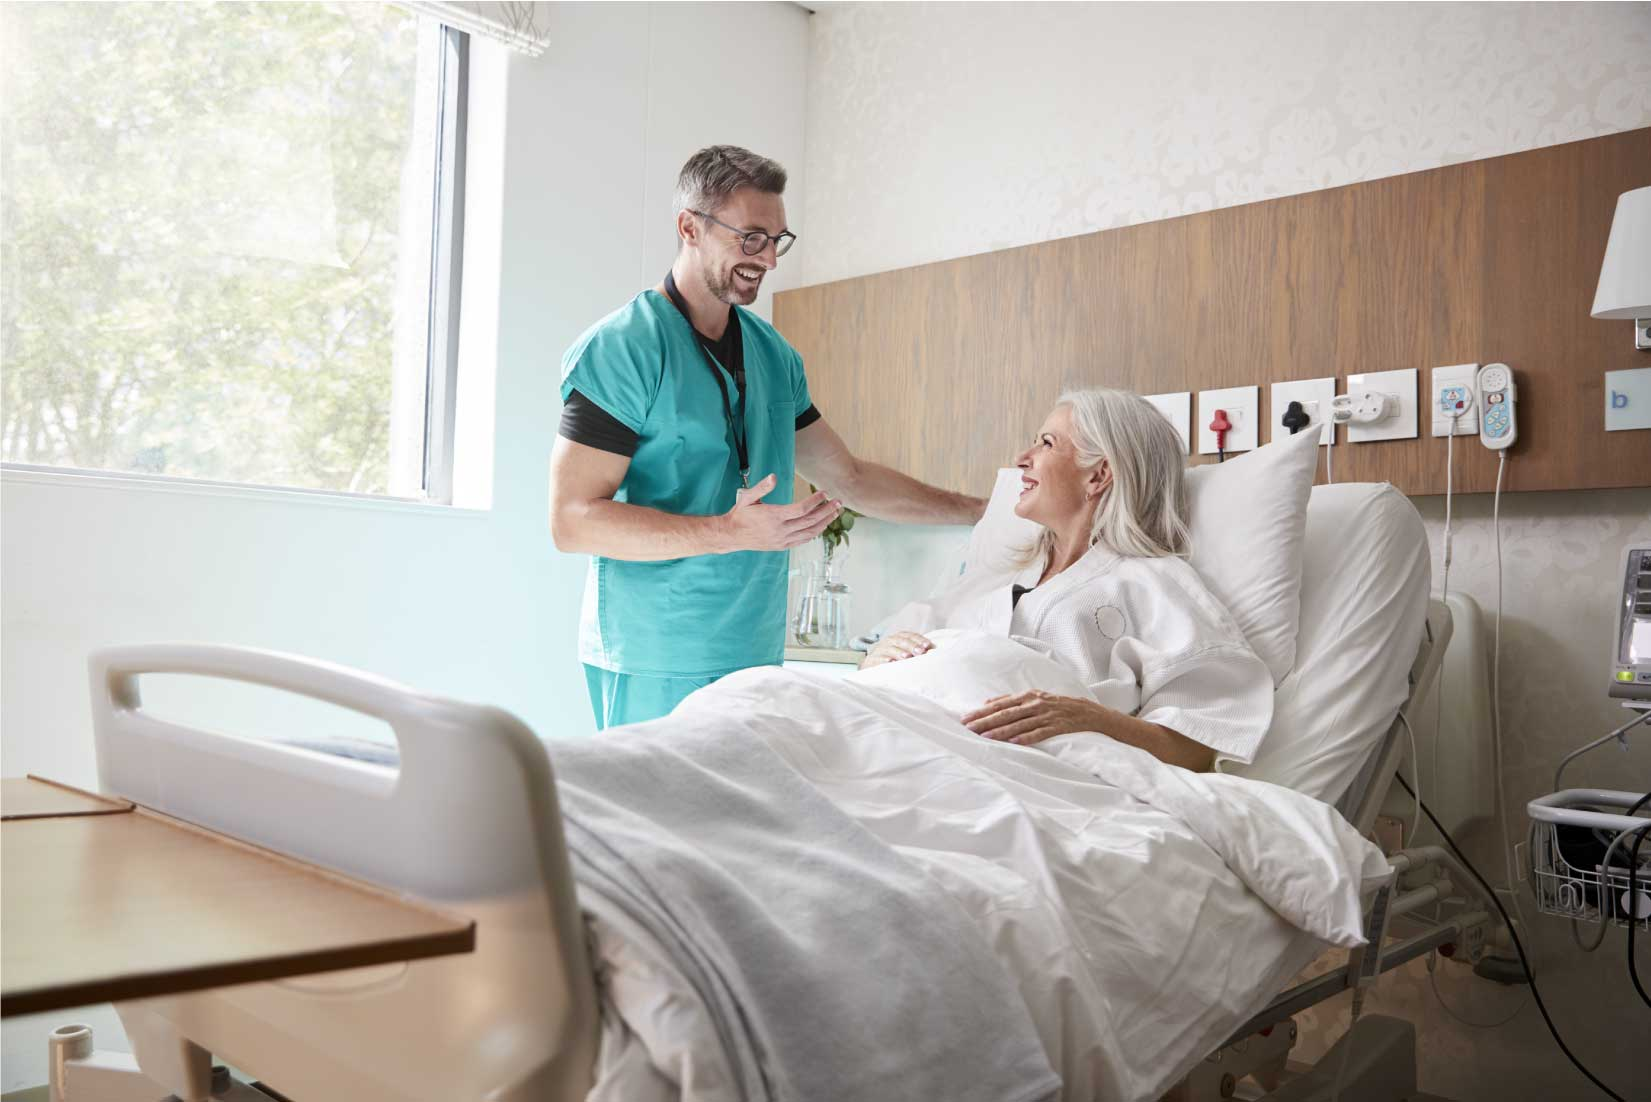 A surgeon in green scrubs standing smiling at the bedside of an elderly female patient